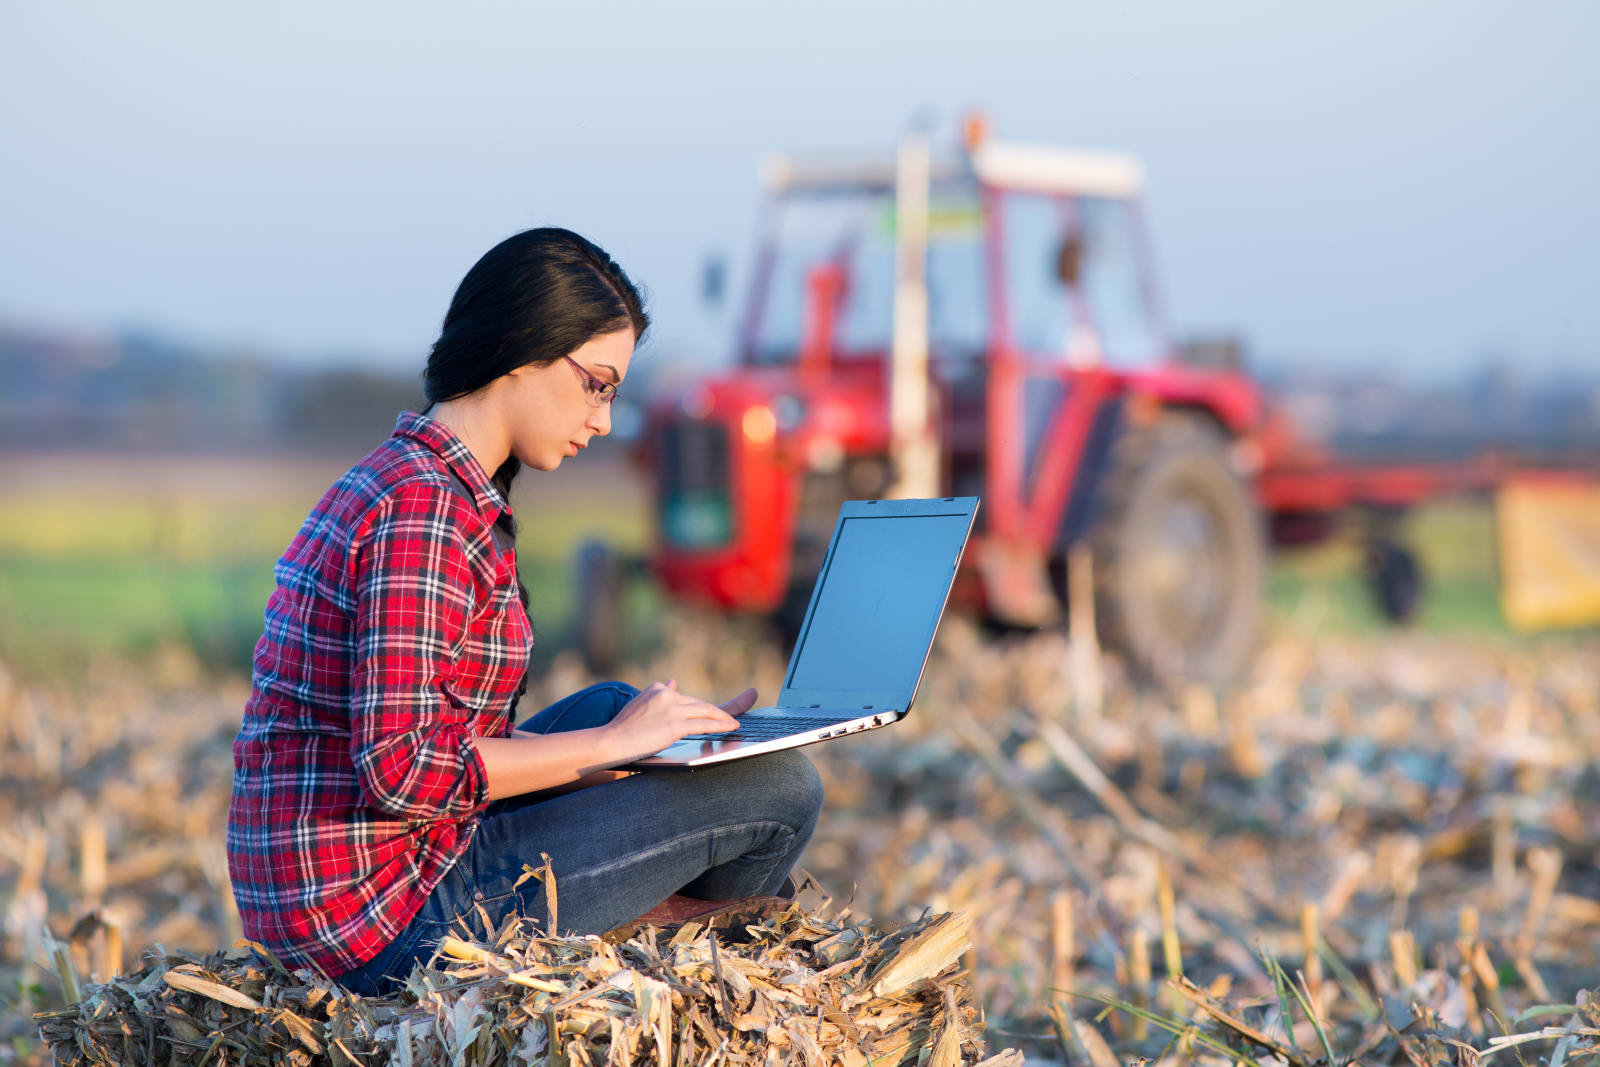 FCC approves another $137 million to expand rural broadband access